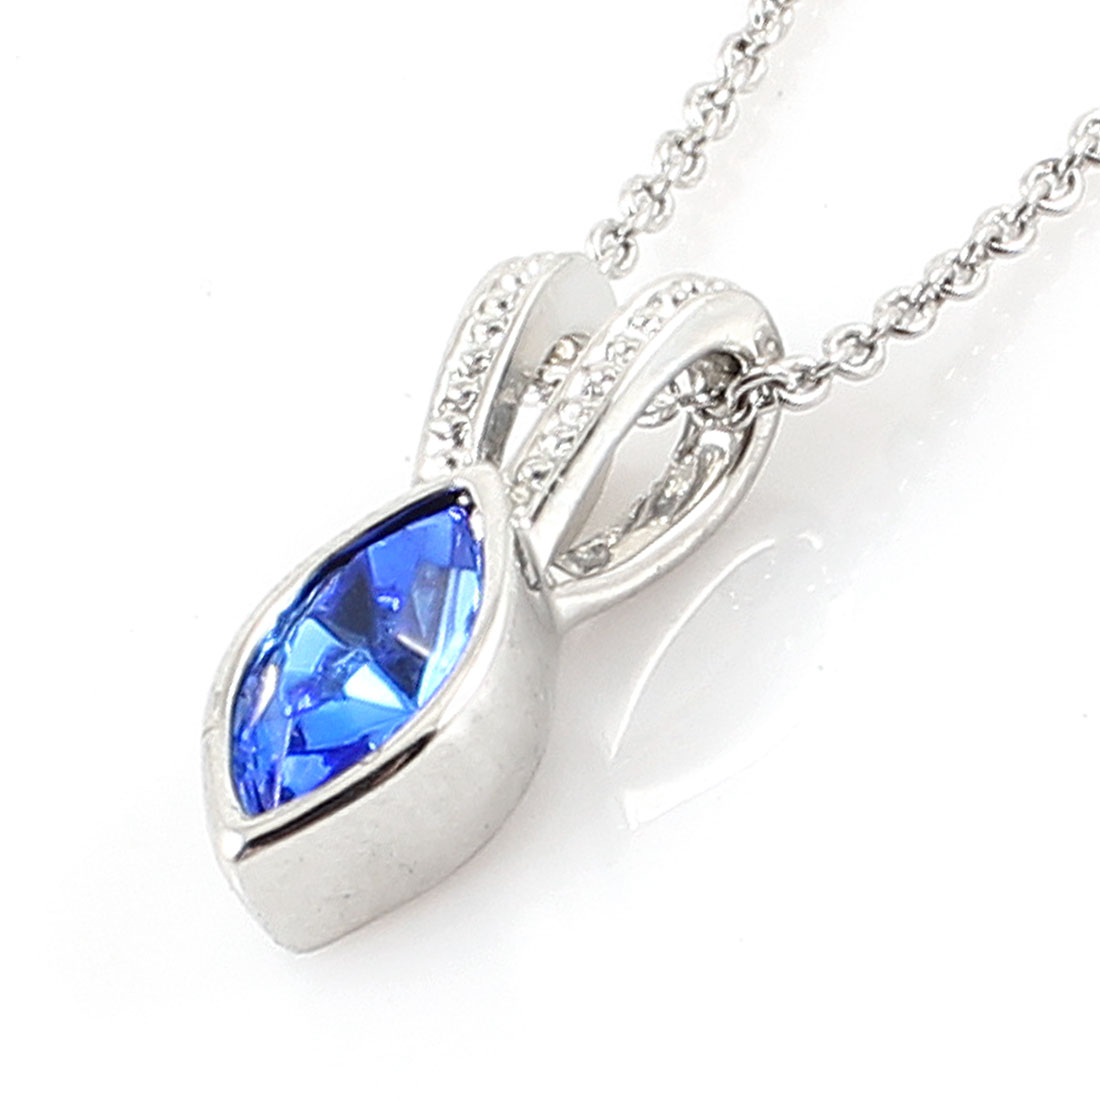 Lobster Clasp Royal Blue Faux Crystal Pendant Necklace for Ladies